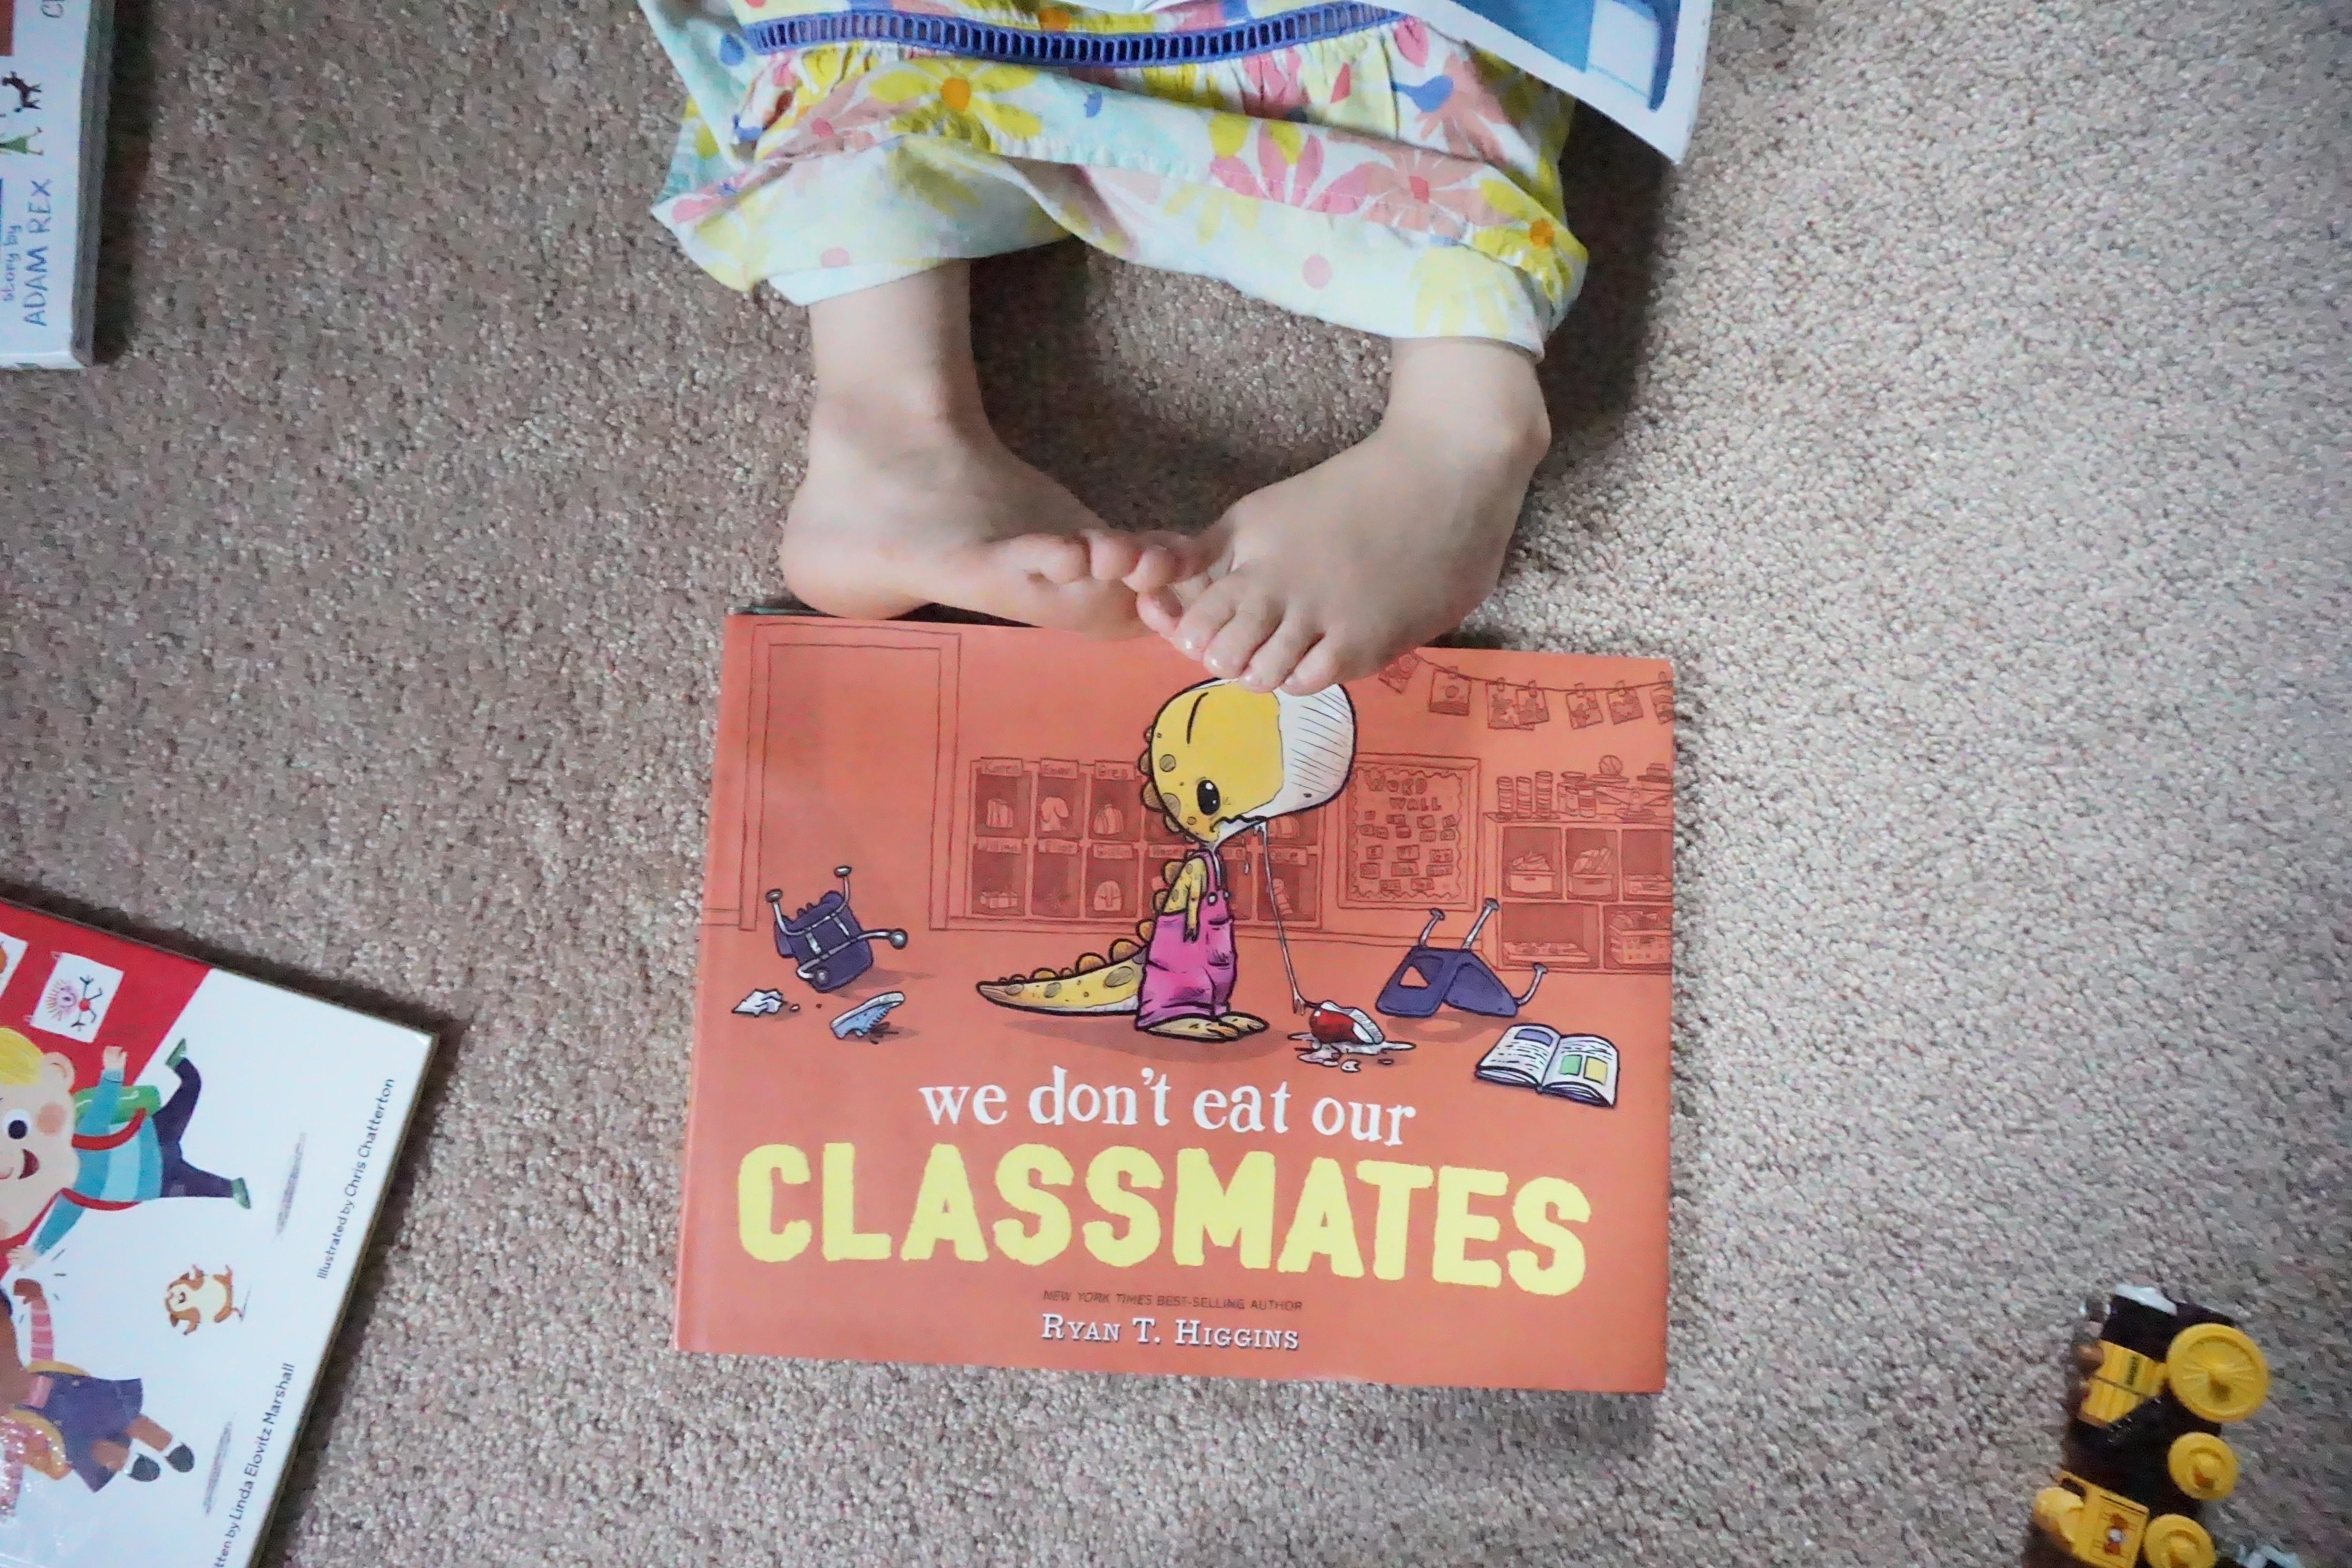 We Don't Eat Our Classmates book w/ toddler toes